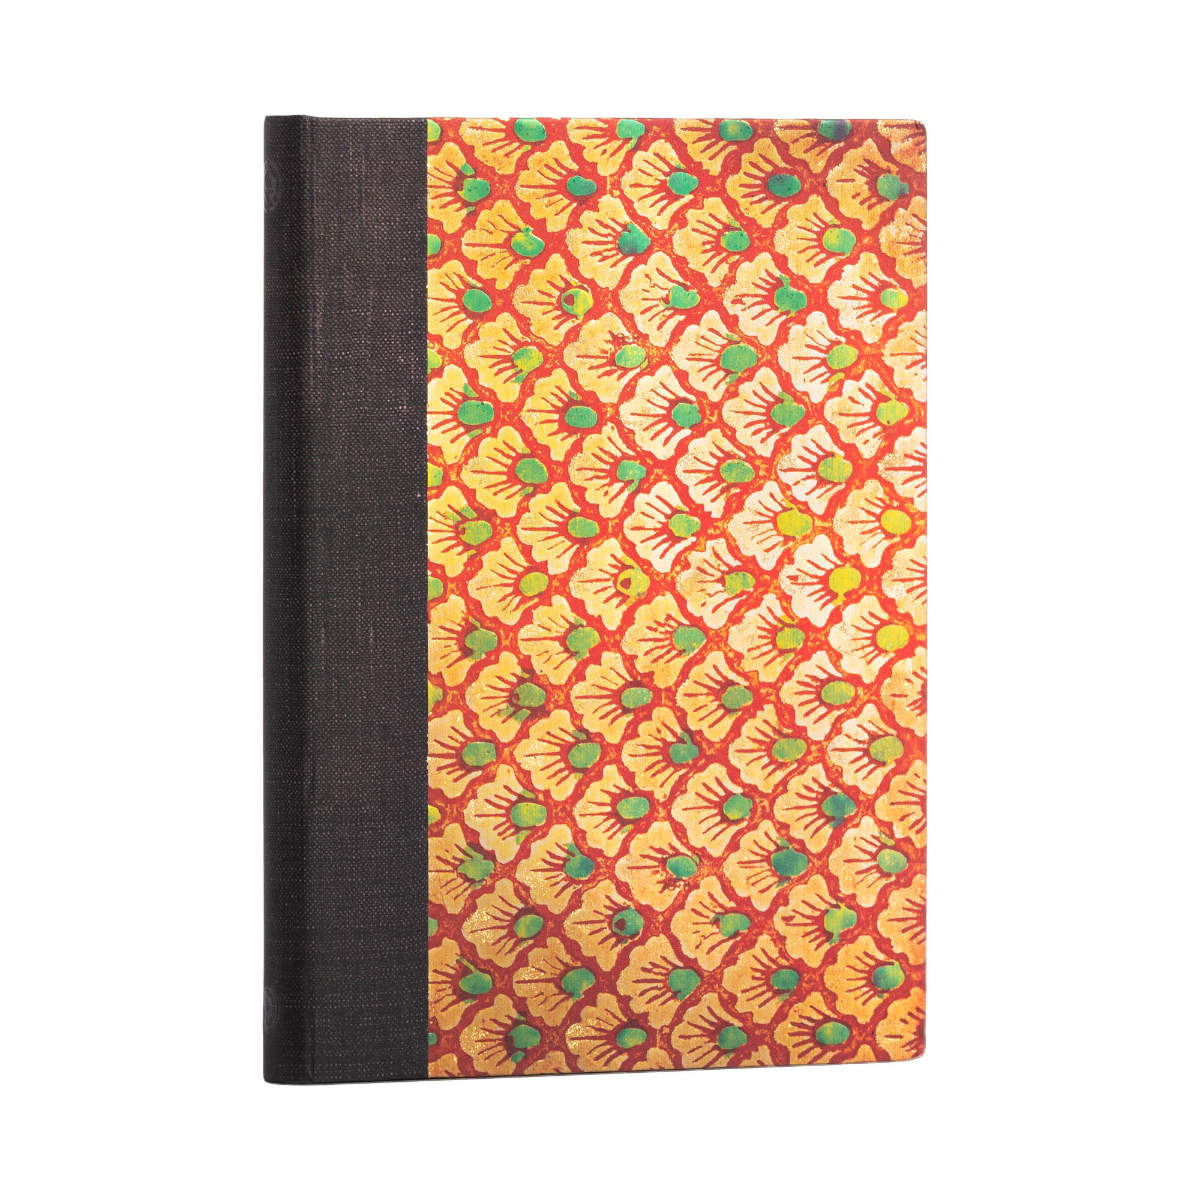 Paperblanks Virginia Woolf The Waves Vol 3 Midi 5x7 Inch Journal